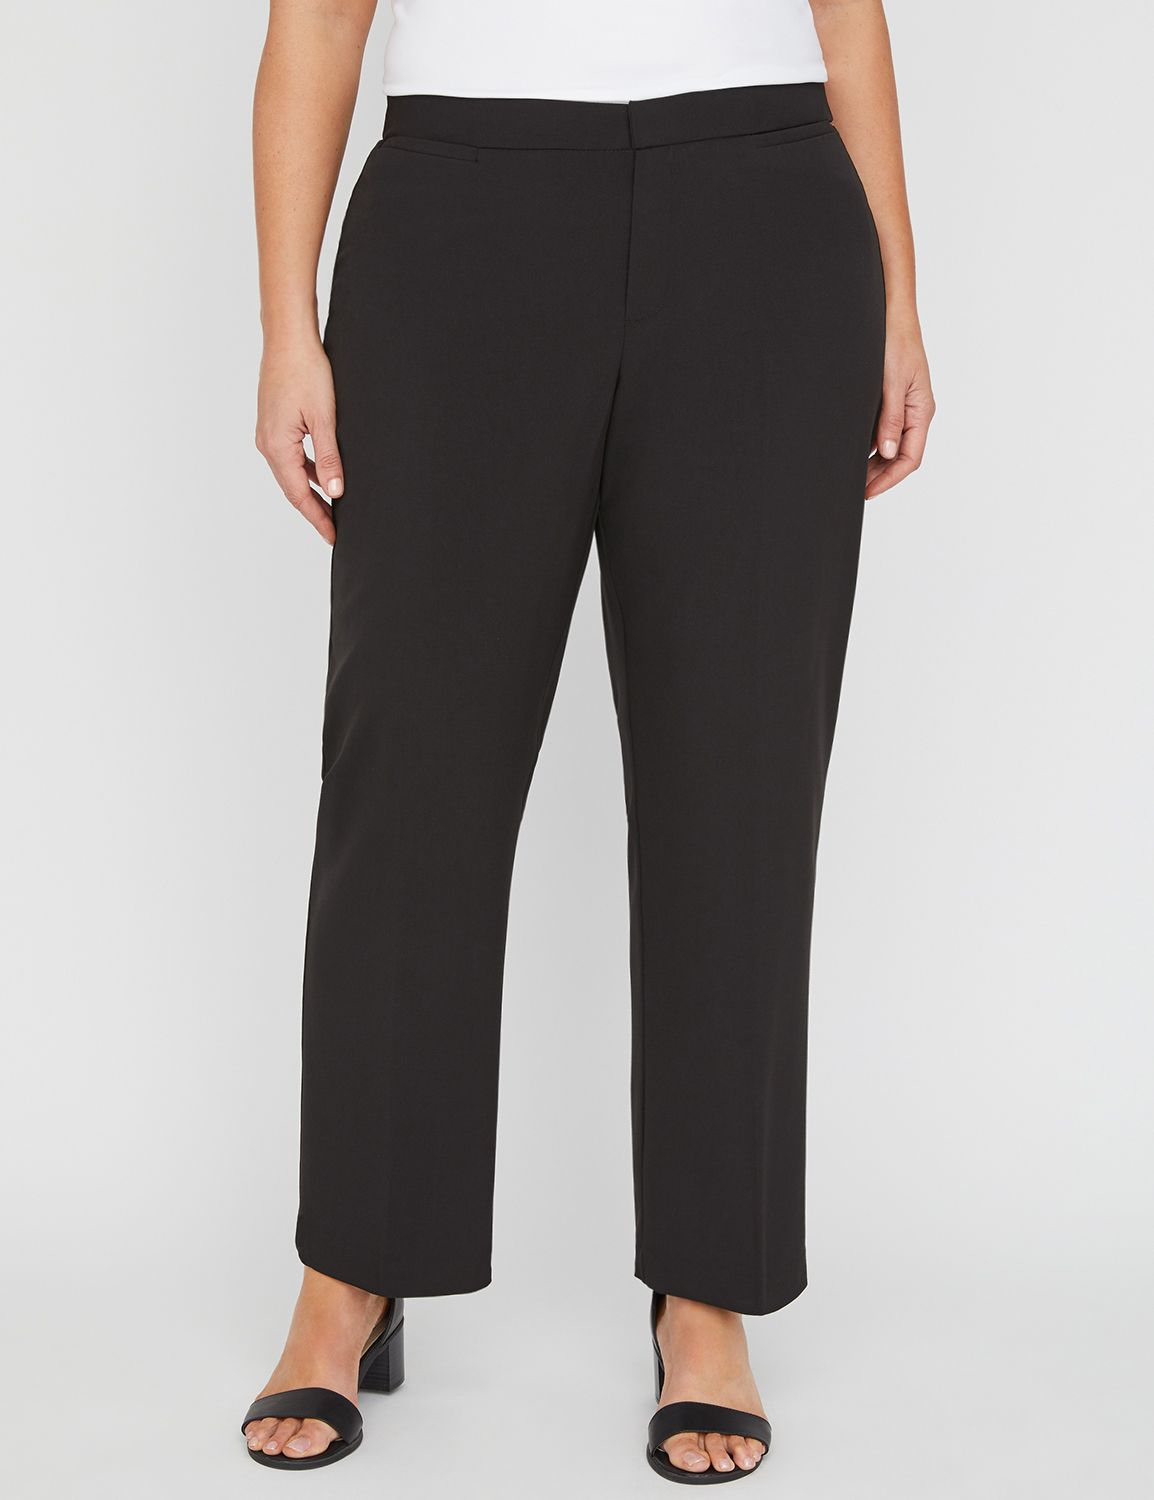 Right Fit Pant (Moderately Curvy) Right Fit Pant (Moderately Curvy) MP-300009881